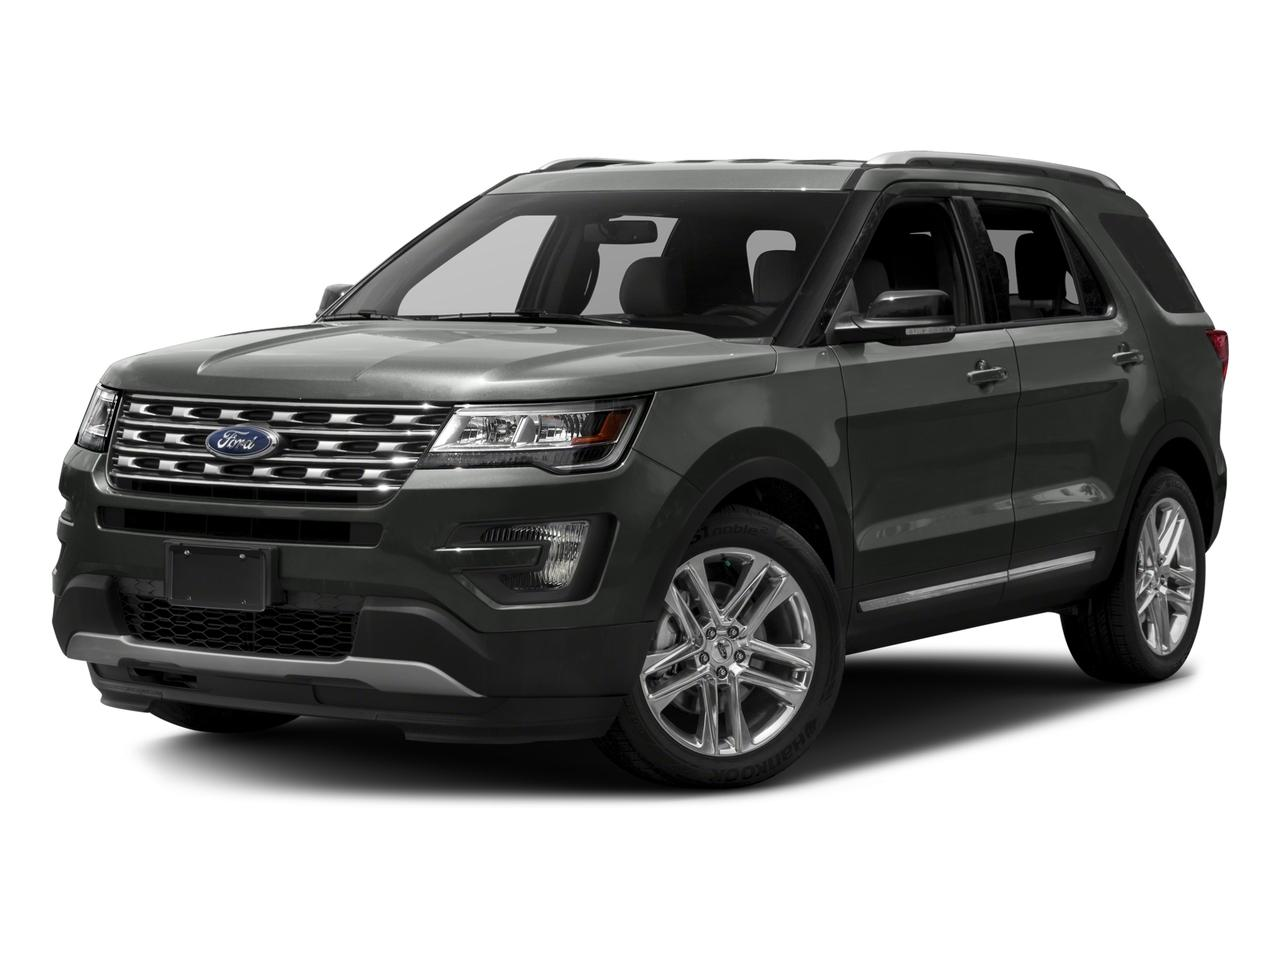 2016 Ford Explorer Vehicle Photo in Tucson, AZ 85705